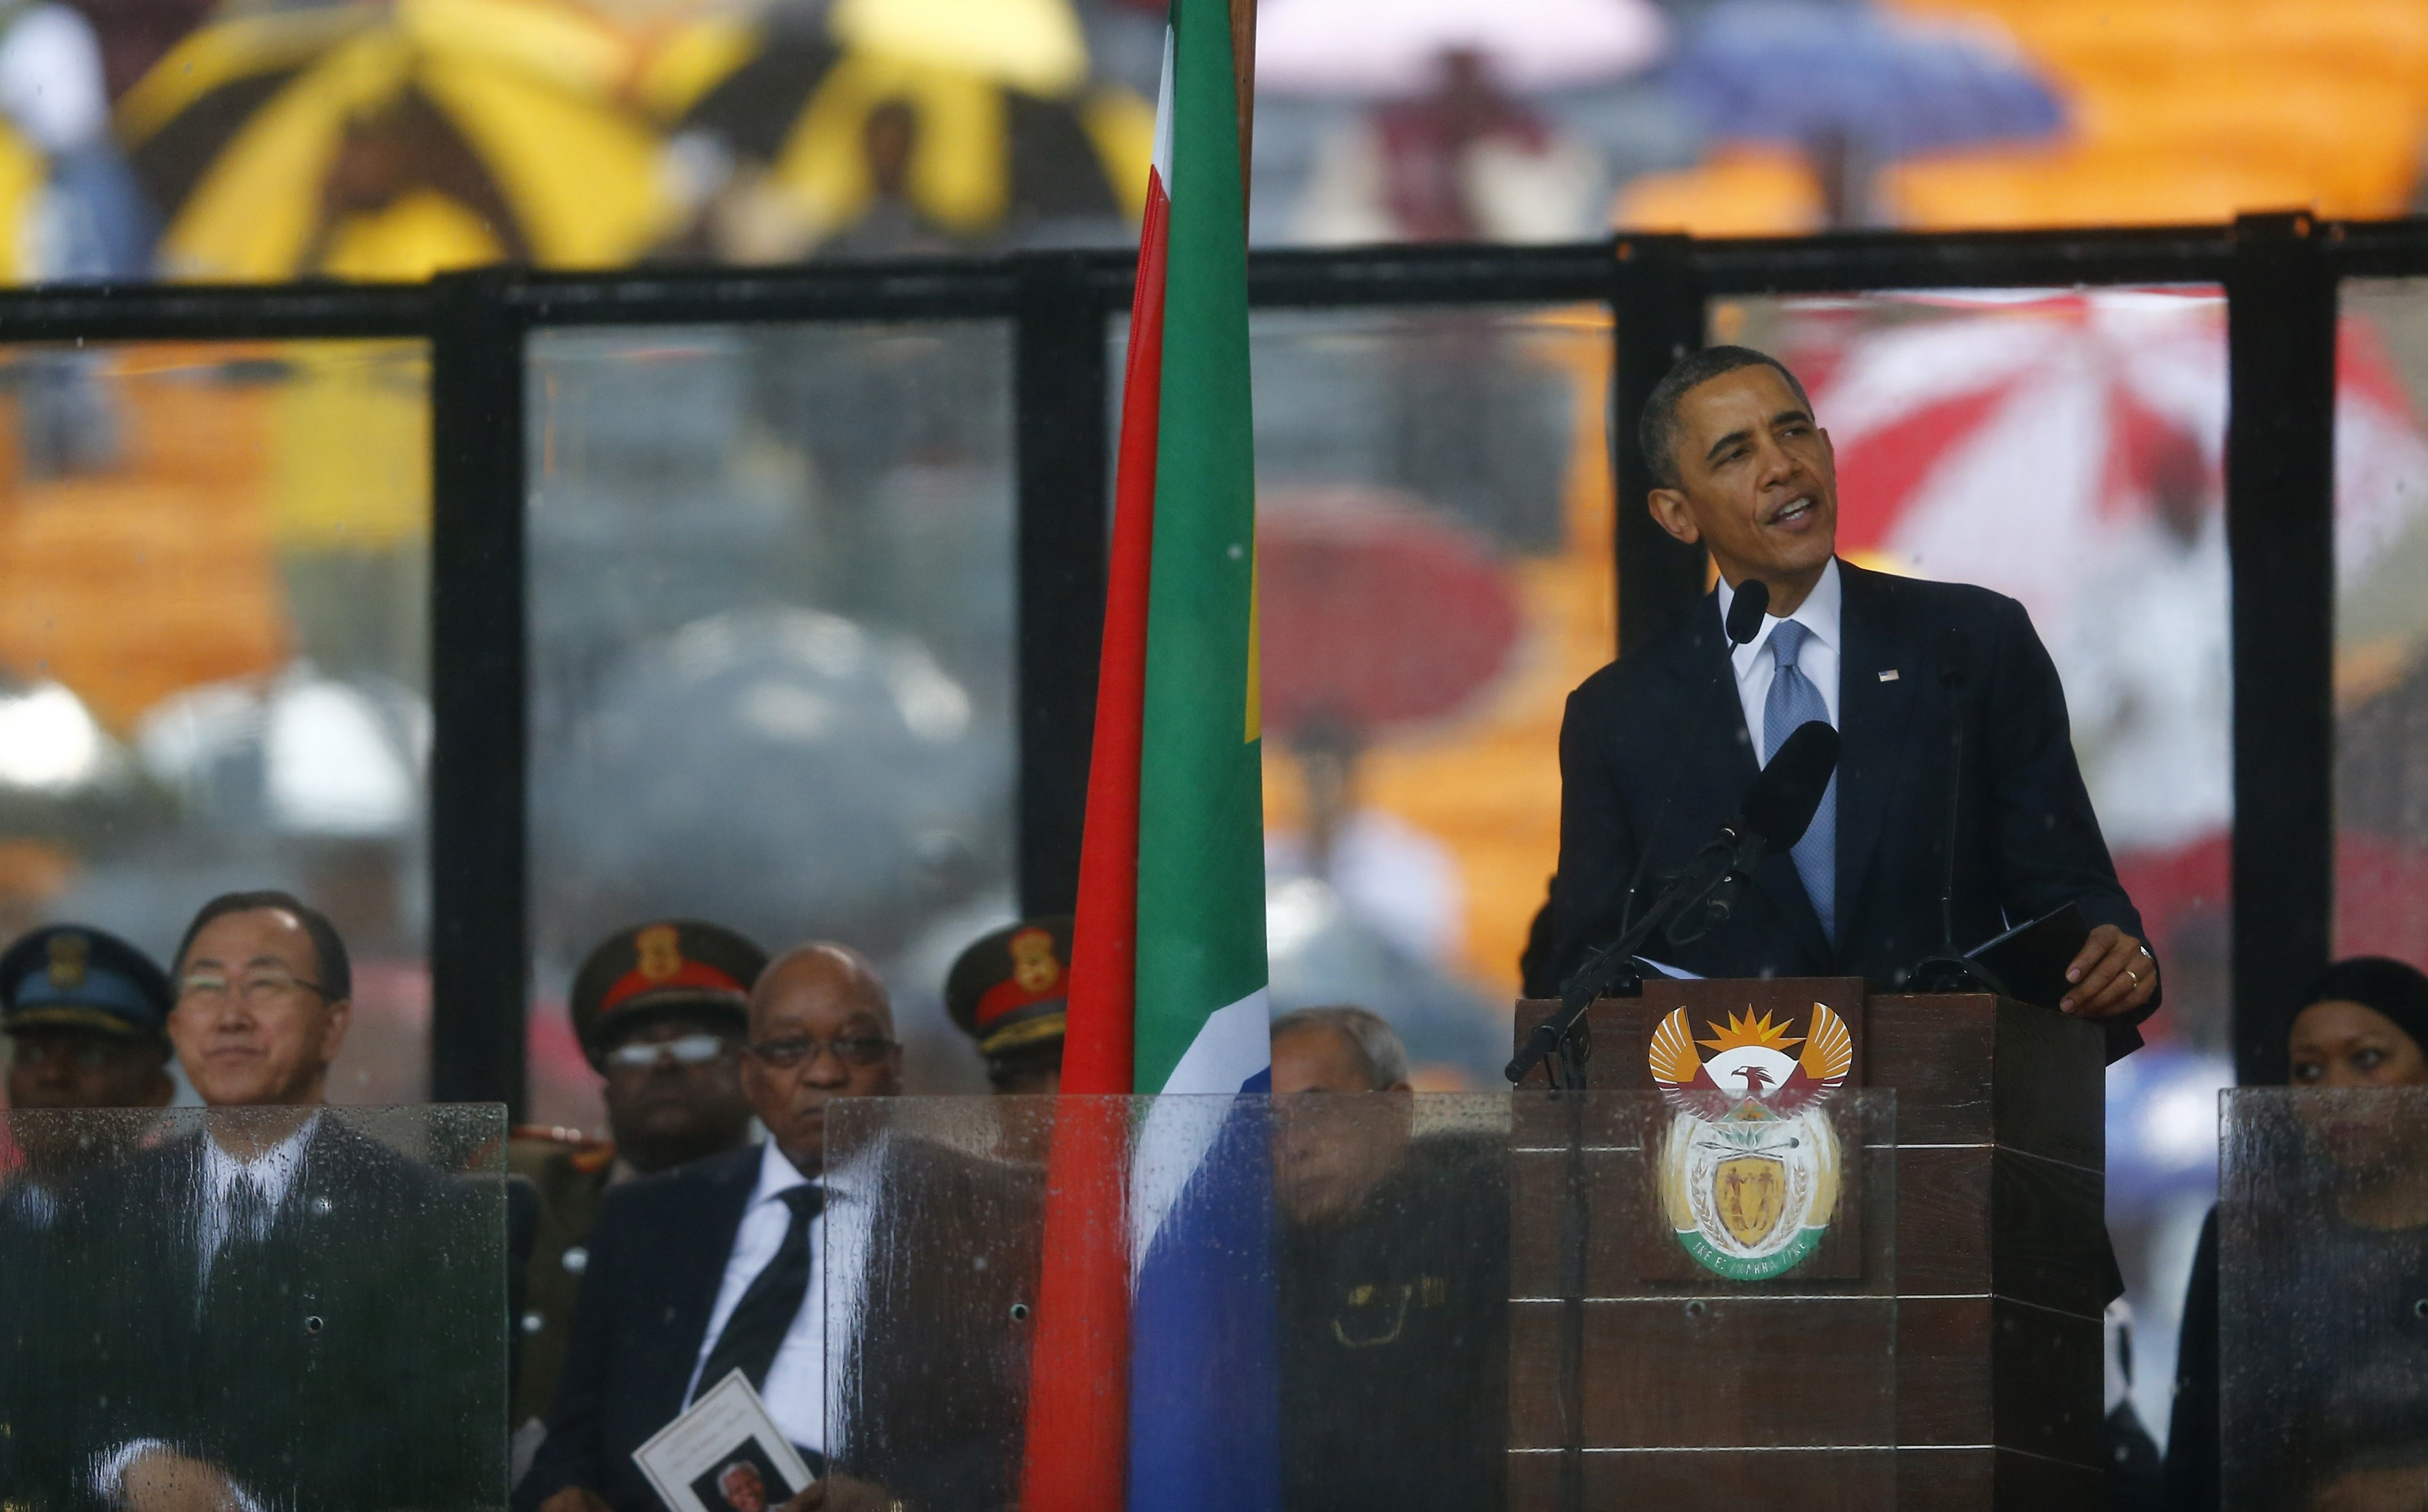 U.S. President Barack Obama delivers his speech at the memorial service for late South African President Nelson Mandela at the FNB soccer stadium in Johannesburg